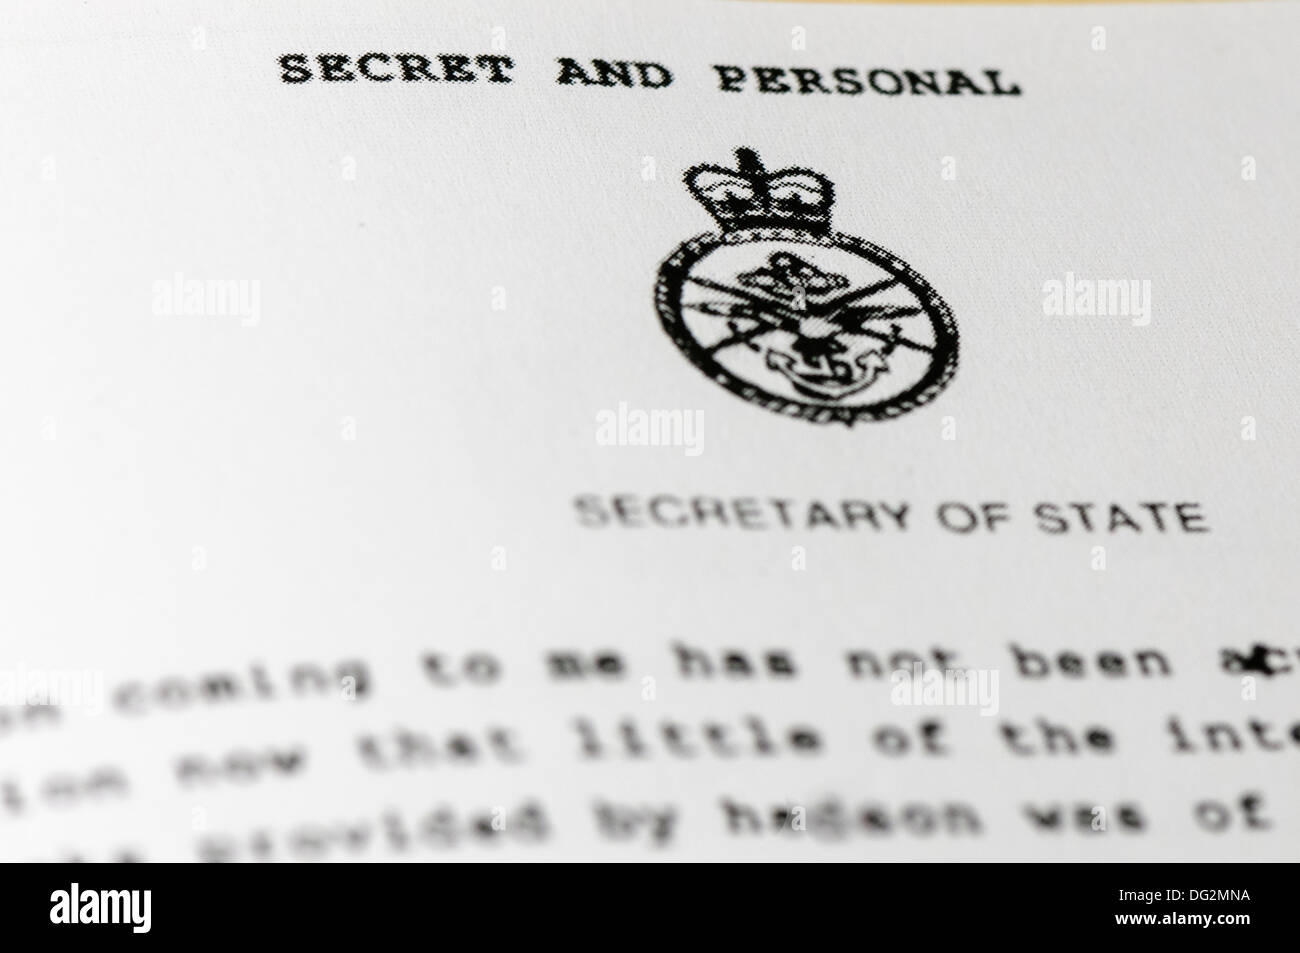 'Secret and Personal' document from the Secretary of State - Stock Image